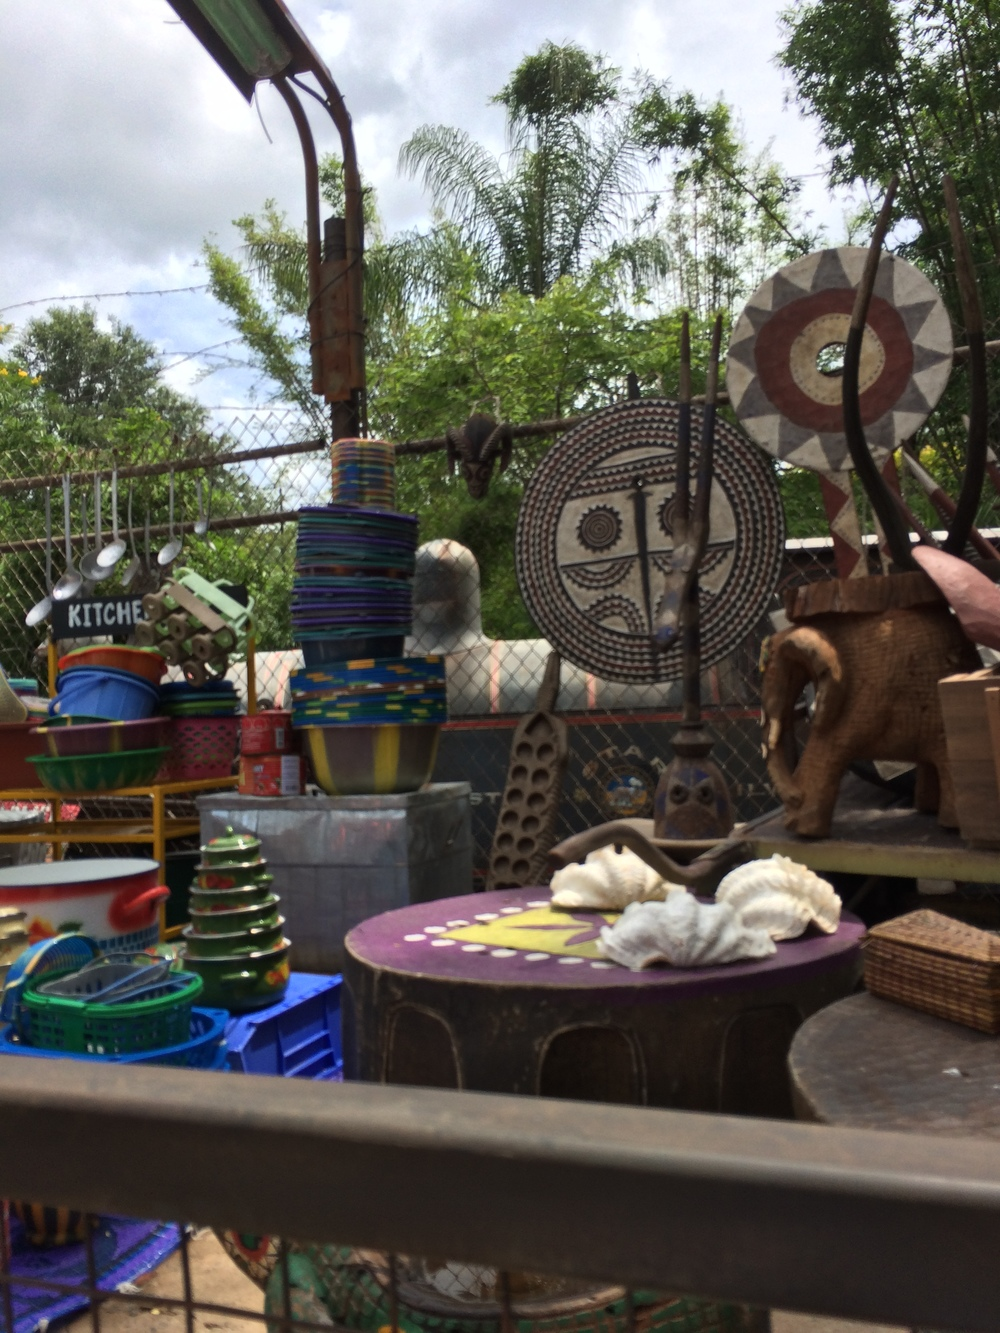 At the end of the Market, there is a sitting area, some covered and some not. Where I sat, you could see the train for Rafiki's Wildlife Reserve go by every few minutes!